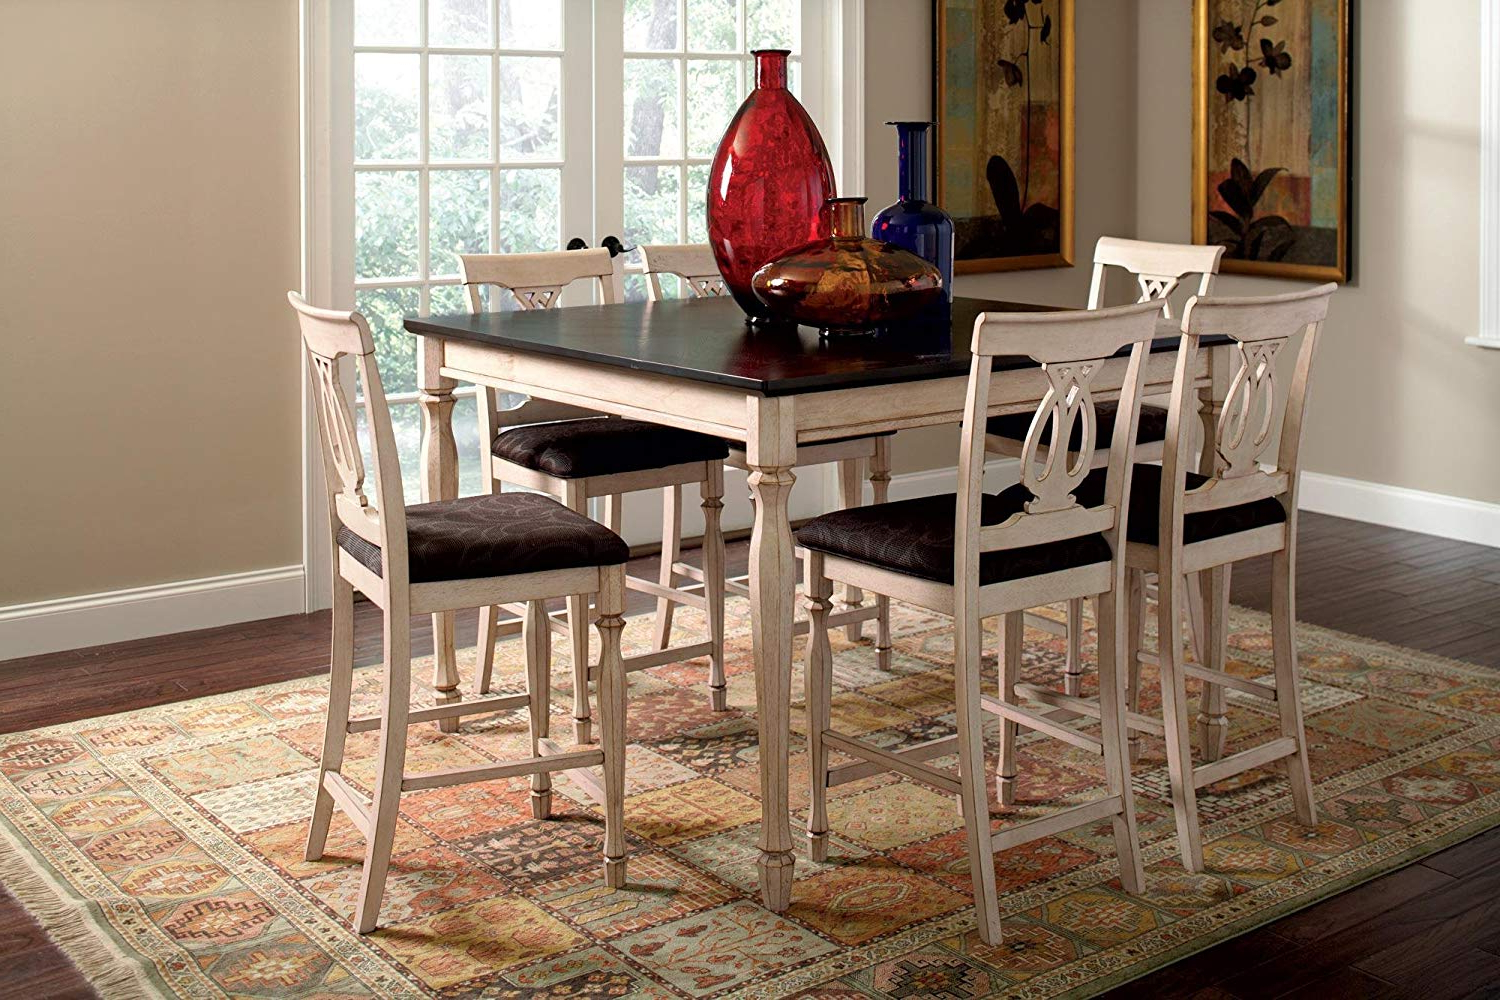 Widely Used Transitional Antique Walnut Square Casual Dining Tables With Regard To Coaster Home Furnishings Transitional Counter Height Table, Antique White  And Merlot (View 25 of 25)